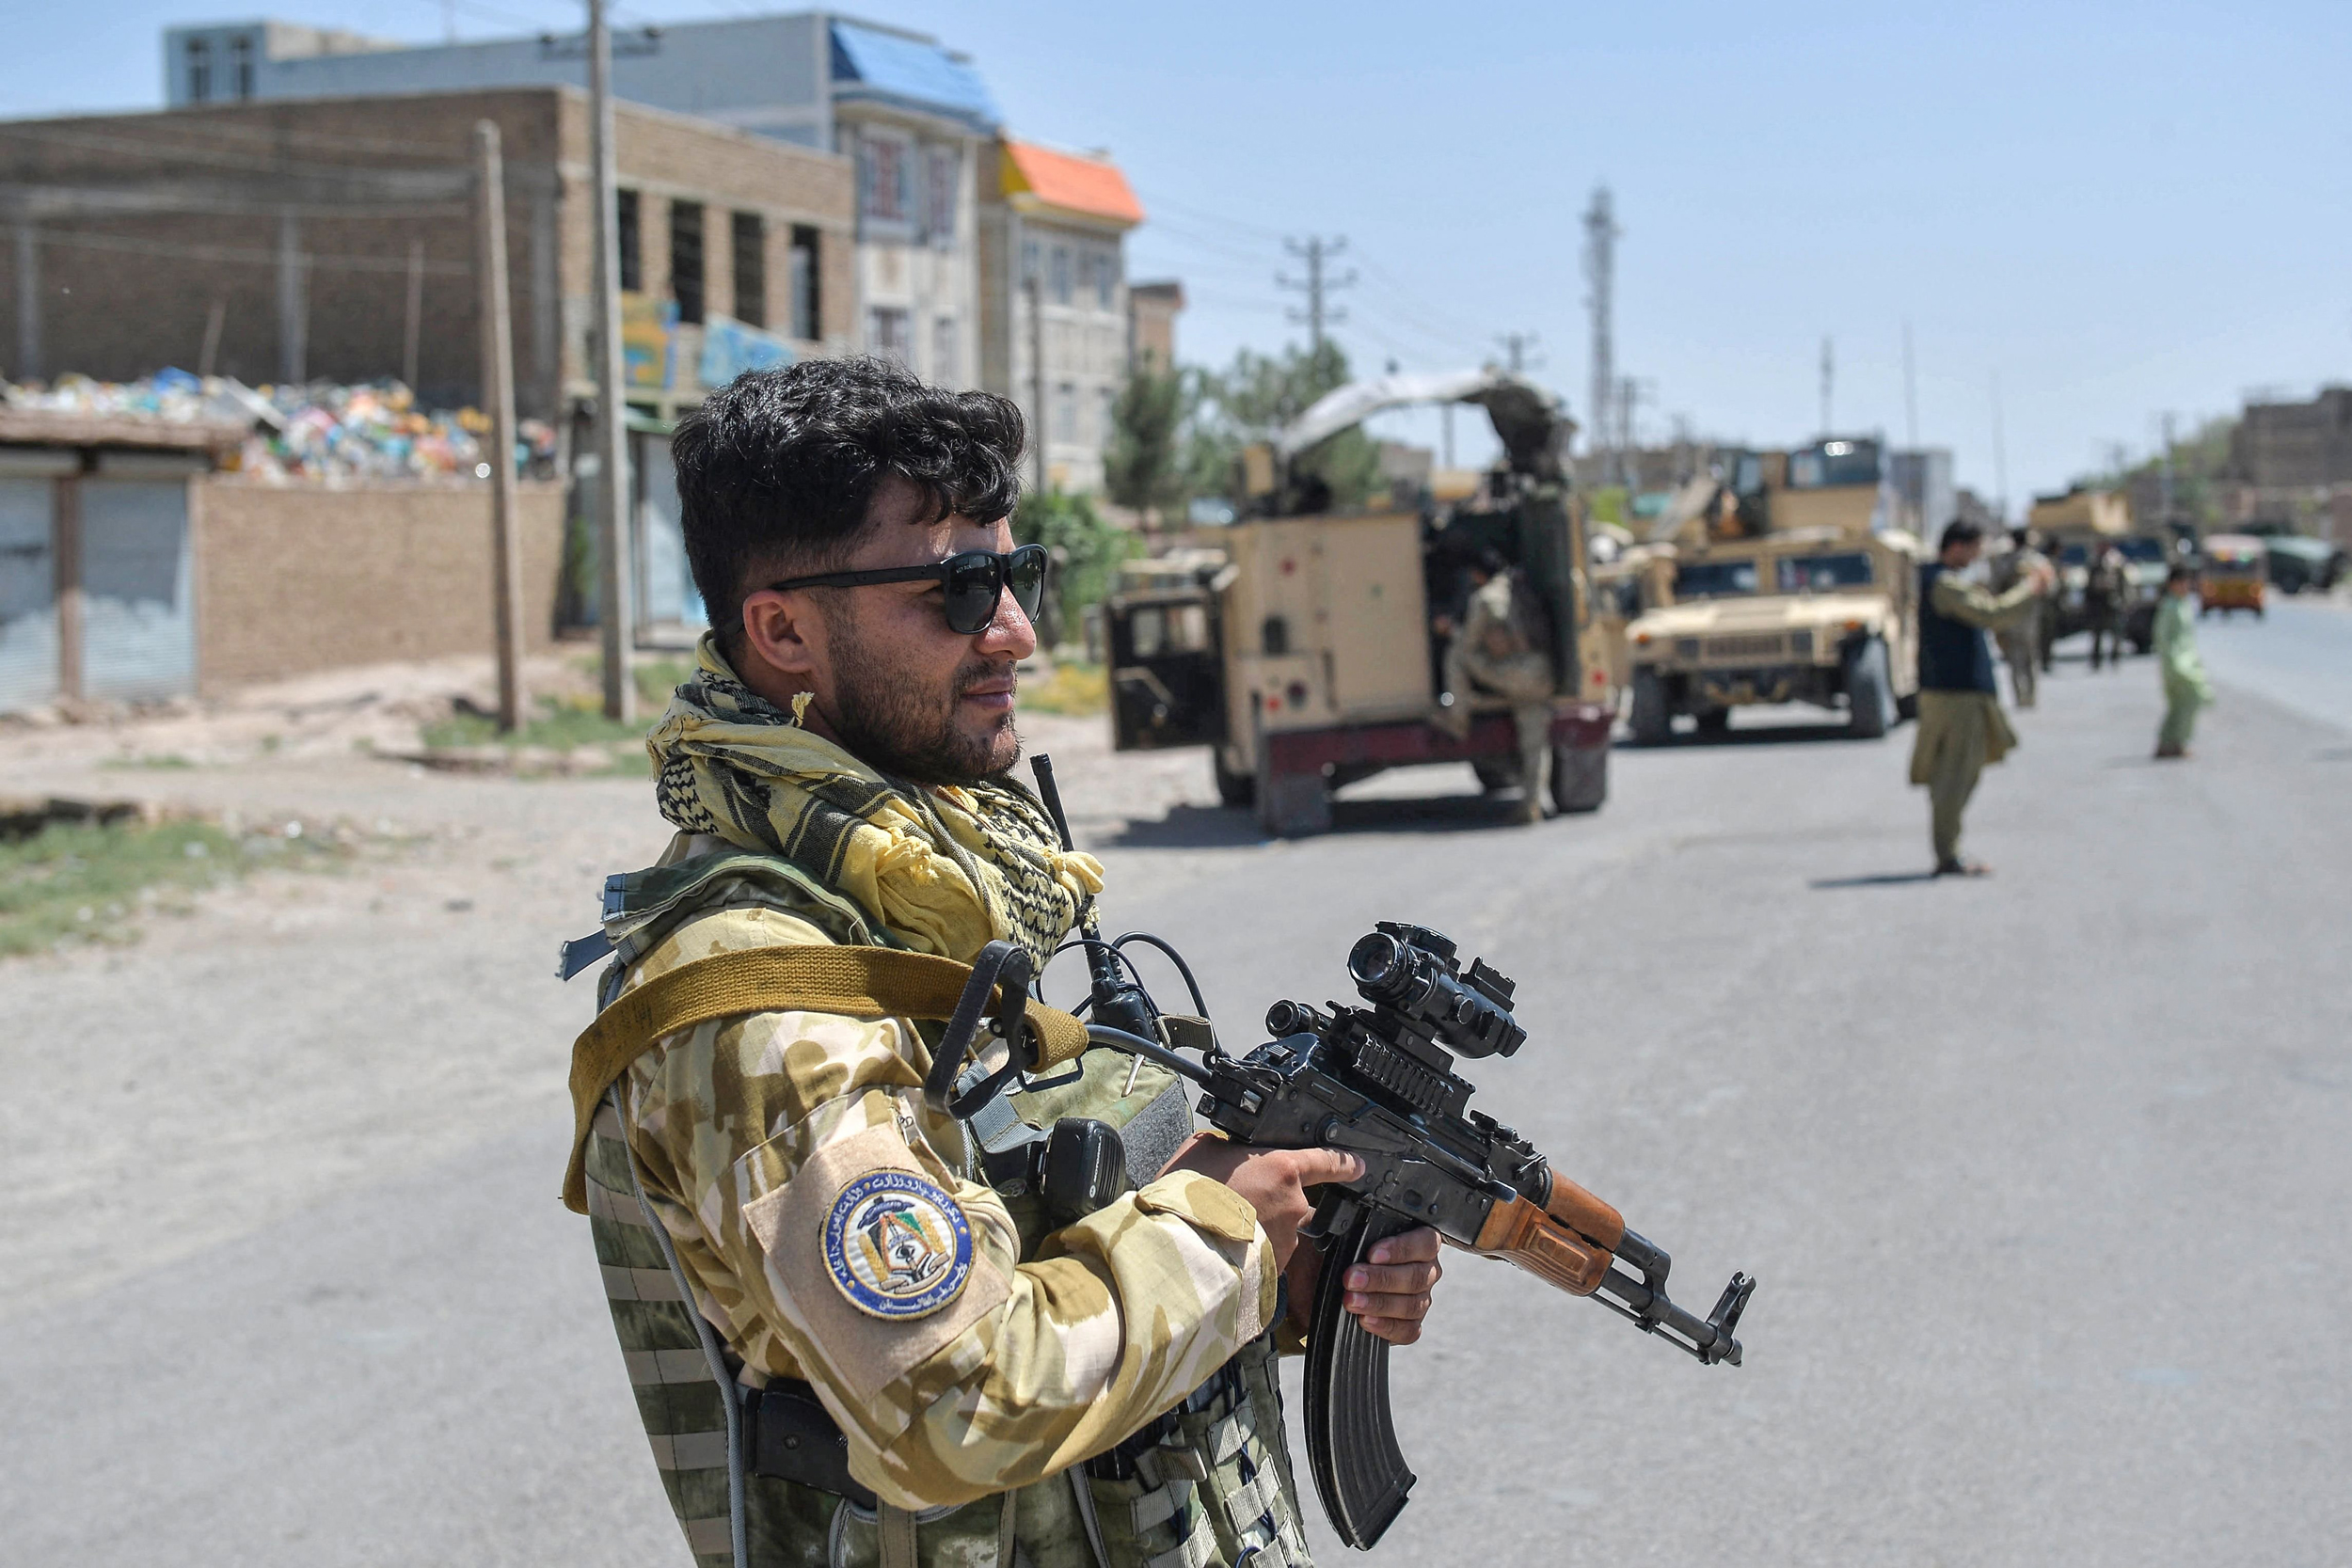 Taliban continue to advance on major cities in Afghanistan